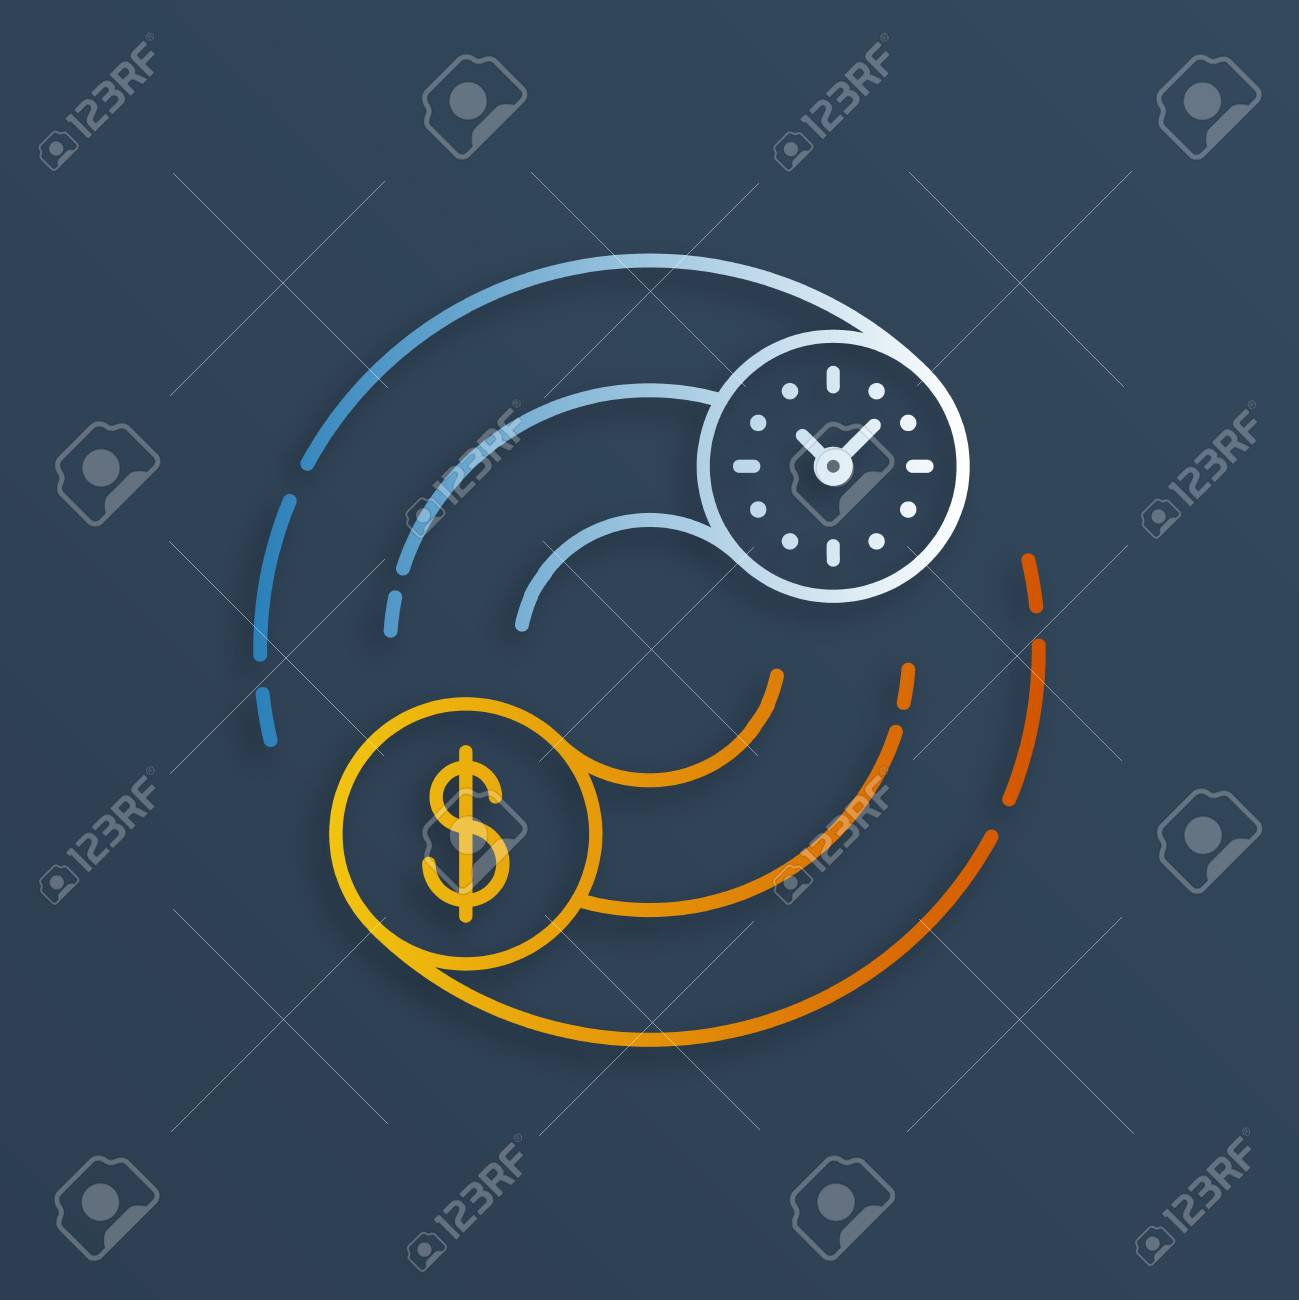 Time is money concept. Internship, savings account, future investments. - 49660043